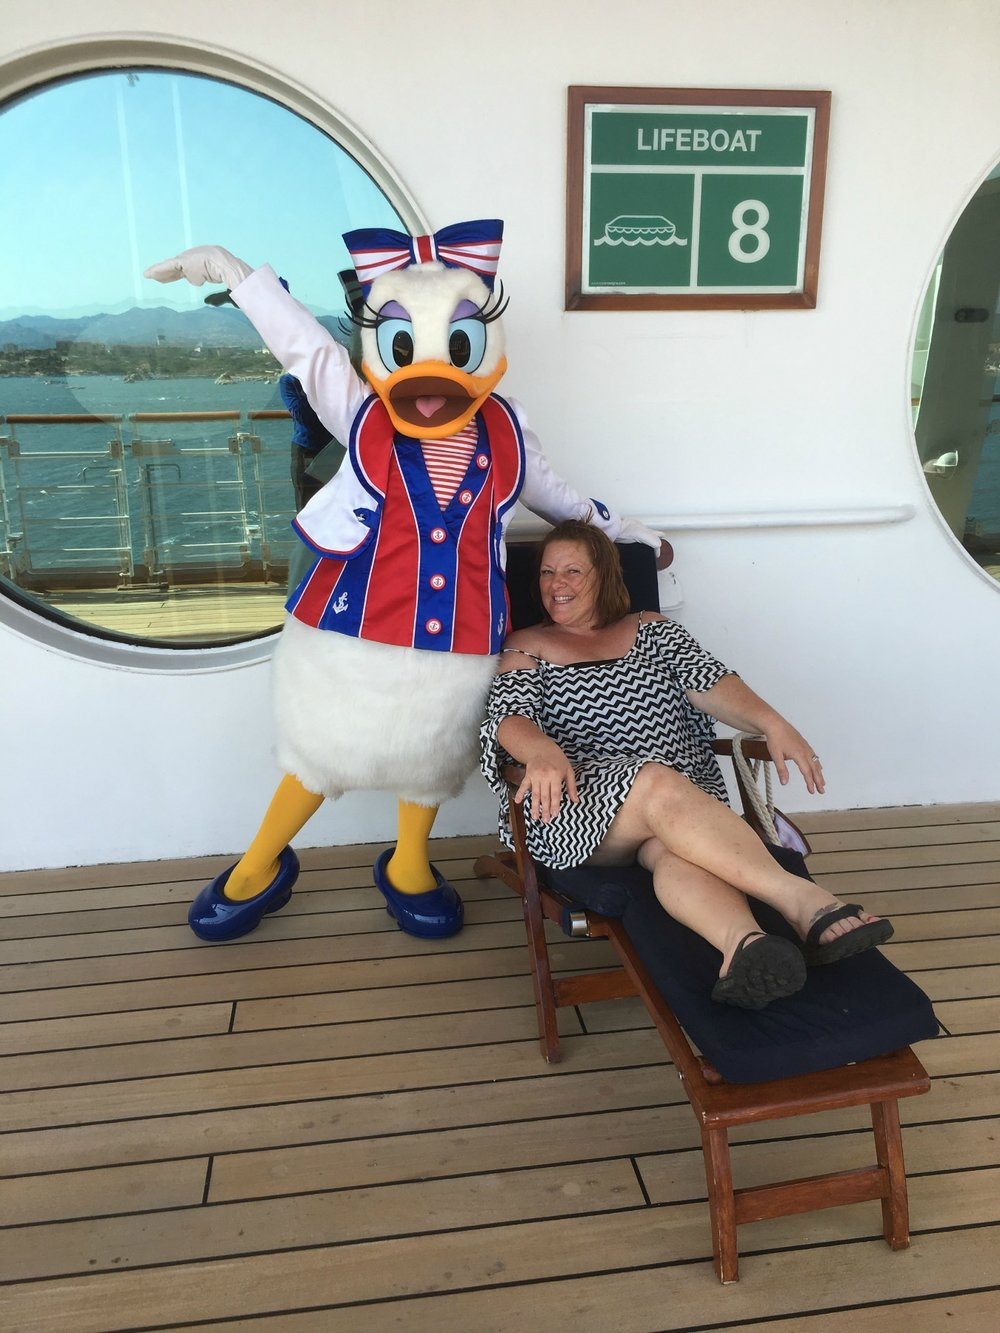 Me and Daisy Duck